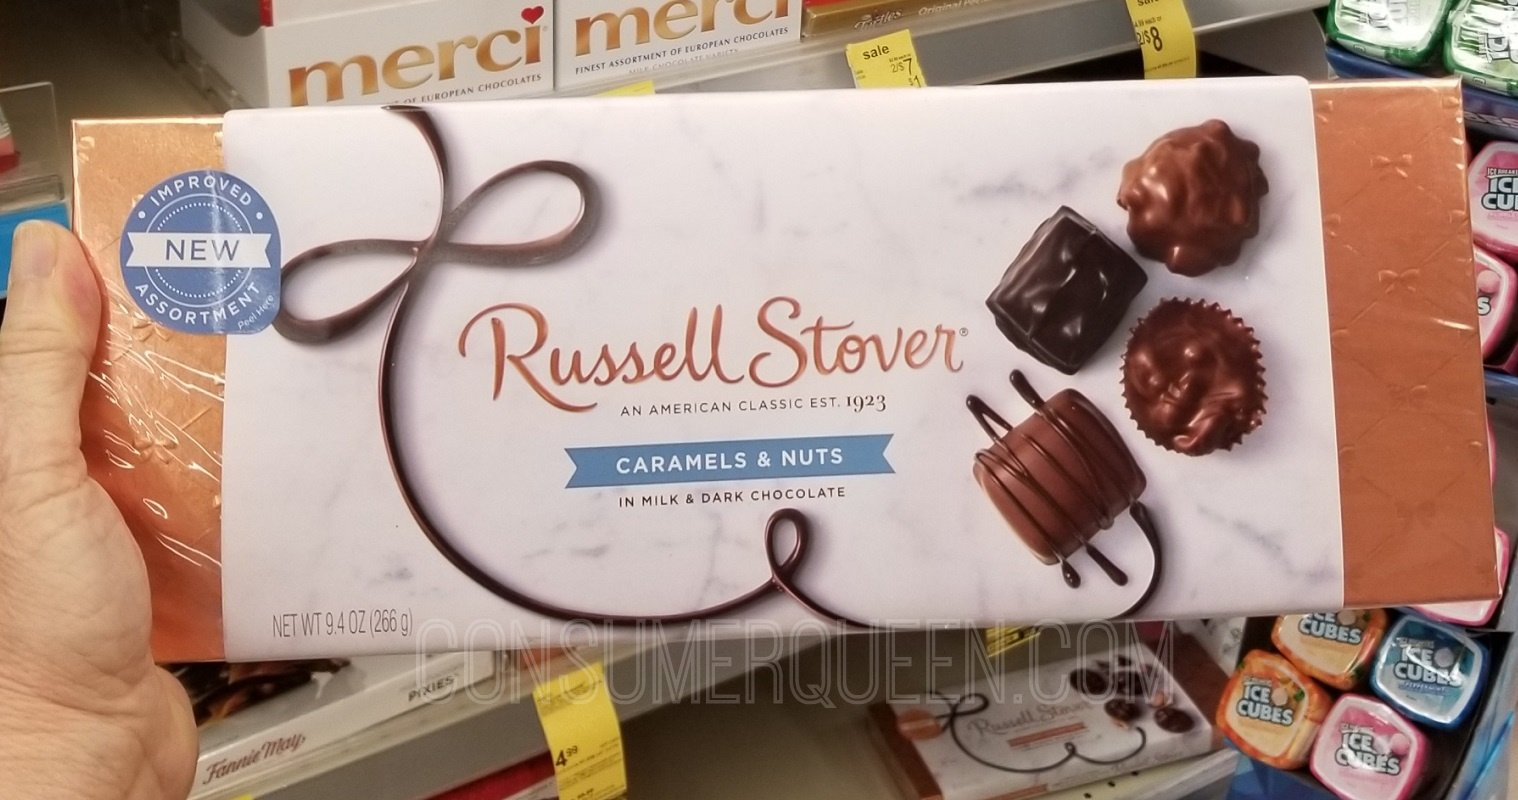 russell stover boxed candy